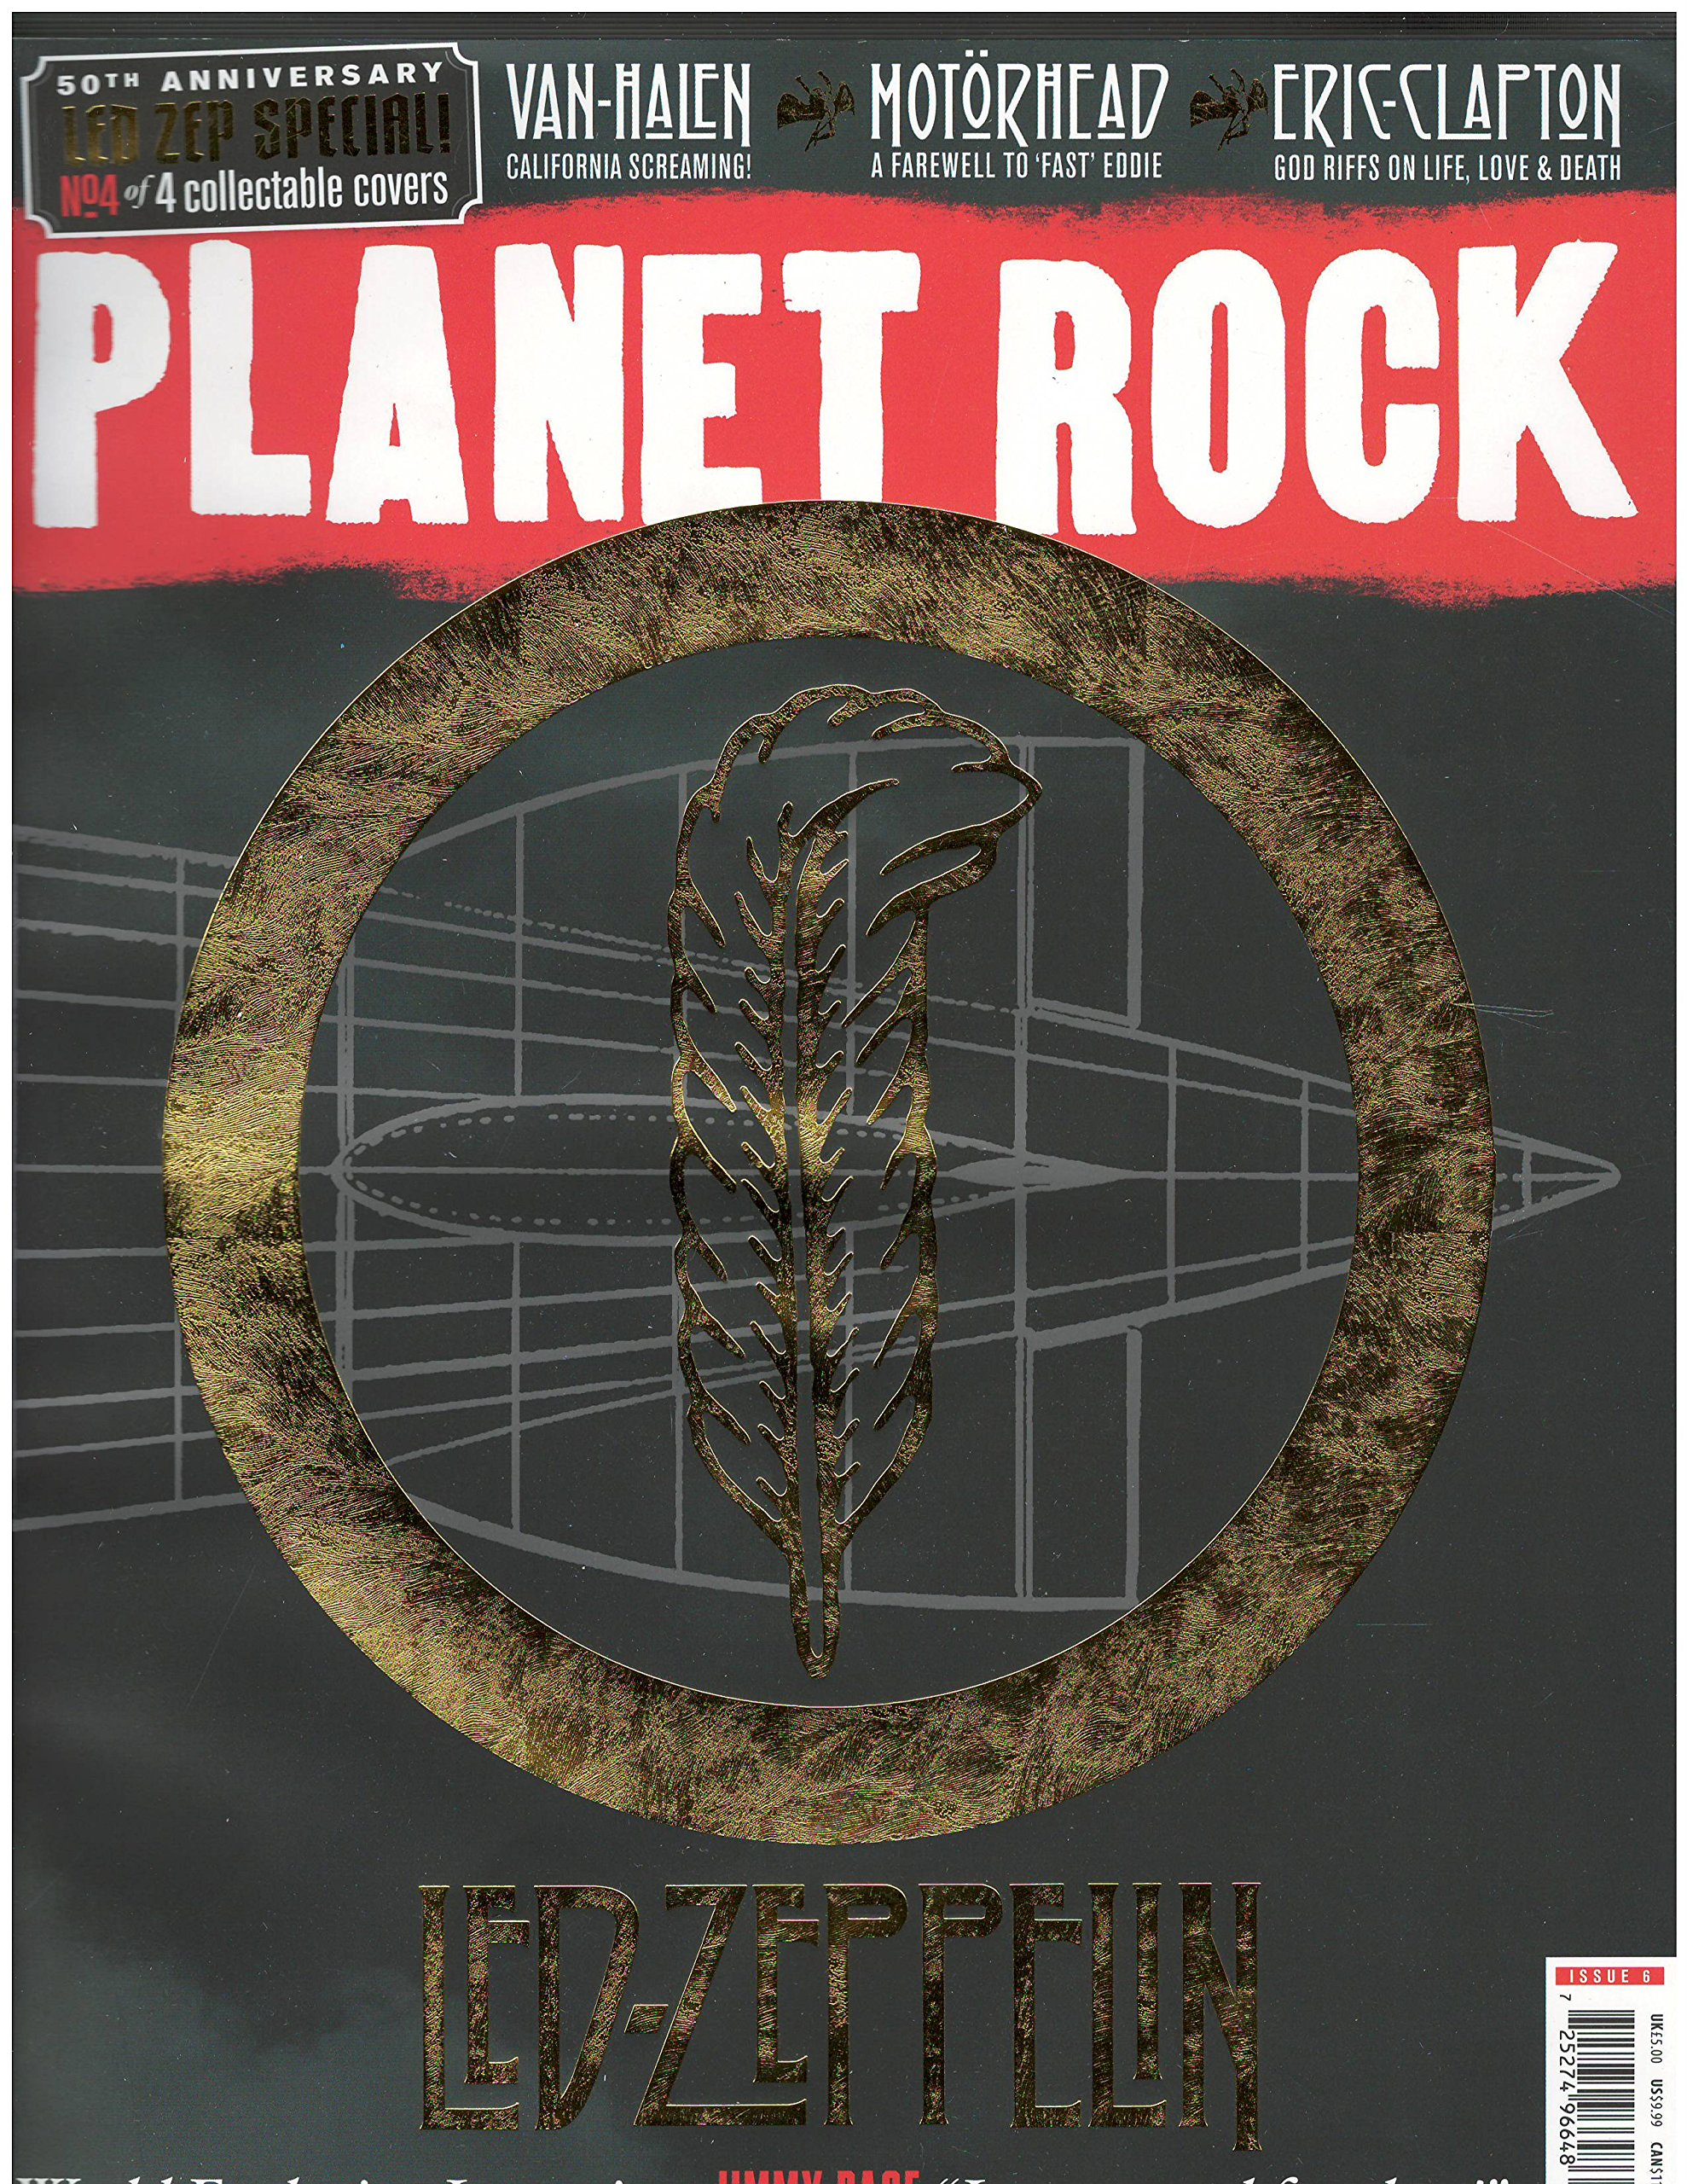 Read Online Planet Rock Magazine Issue 6 Cover 4 of 4 Led-Zeppelin Cover PDF